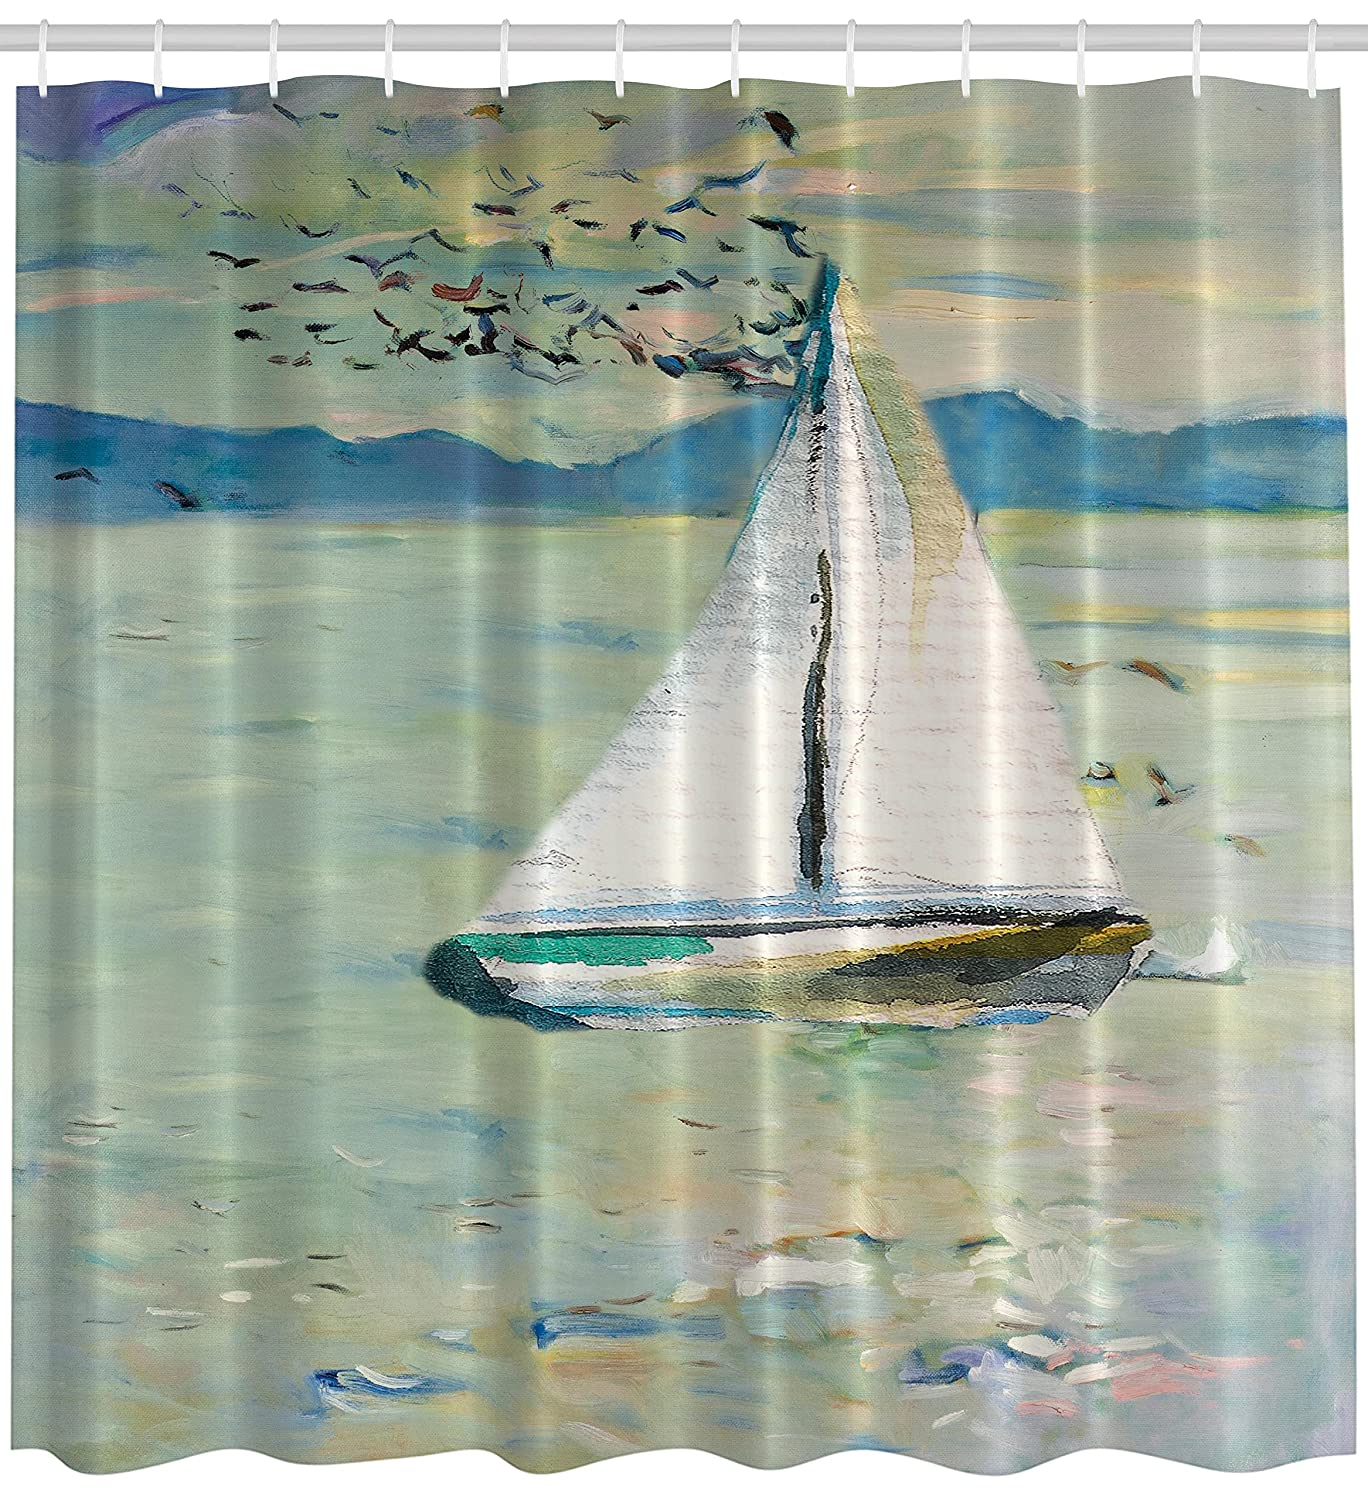 Ocean shower curtain - Amazon Com Art Shower Curtain Impressionist Art Prints Oil Paintings Decor By Ambesonne Monet Sailing Boat Yacht With Birds Watercolor Brushstroke For